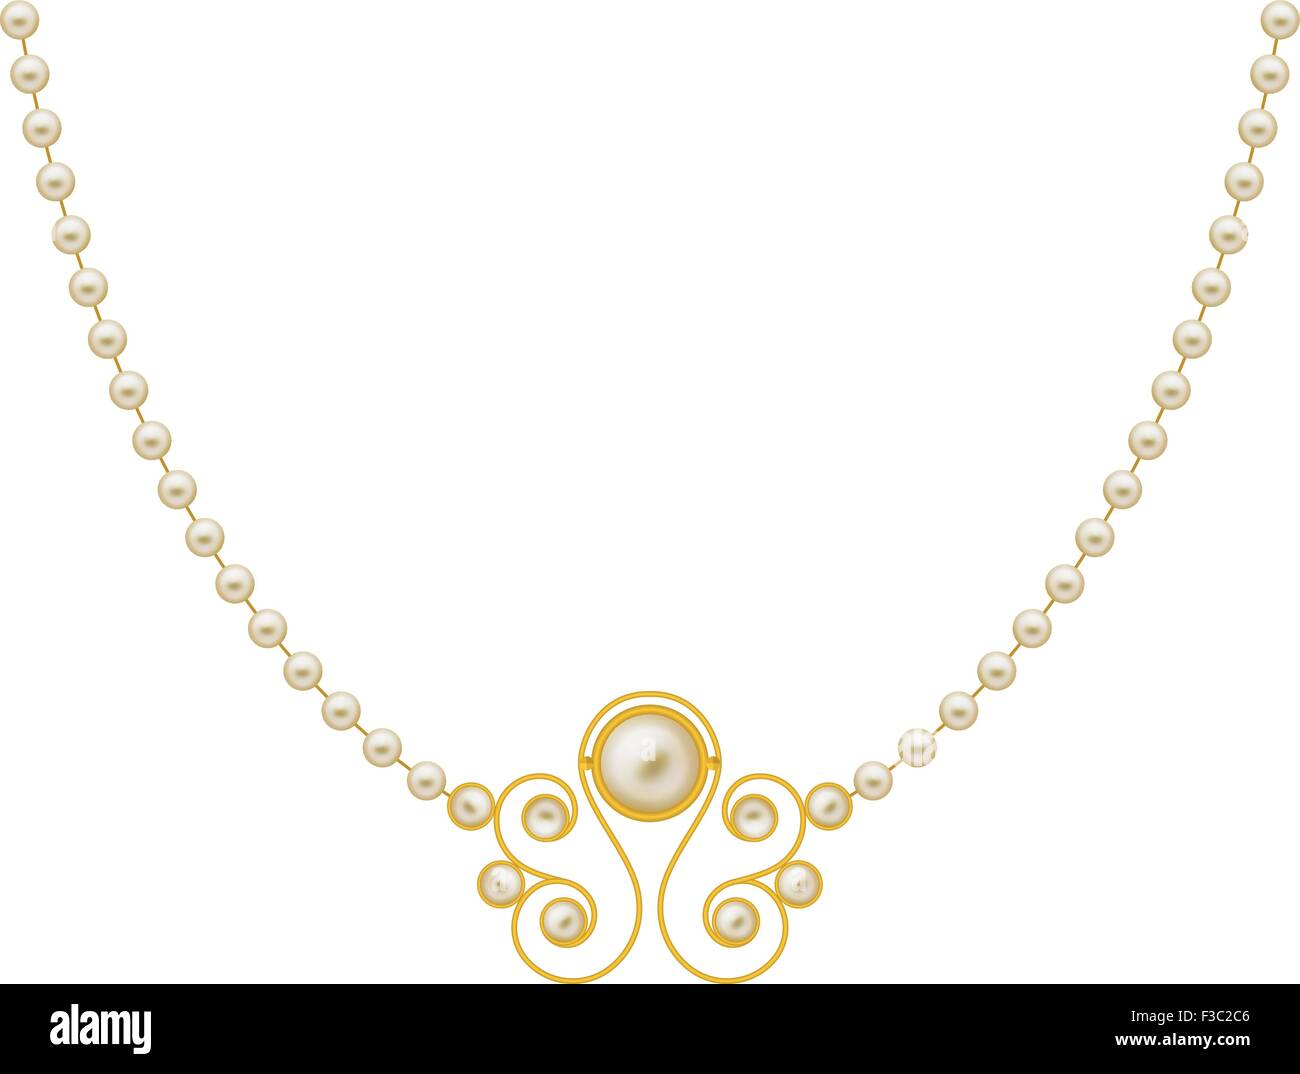 Pearl Gold Jewellery Necklace Vector Art Stock Vector